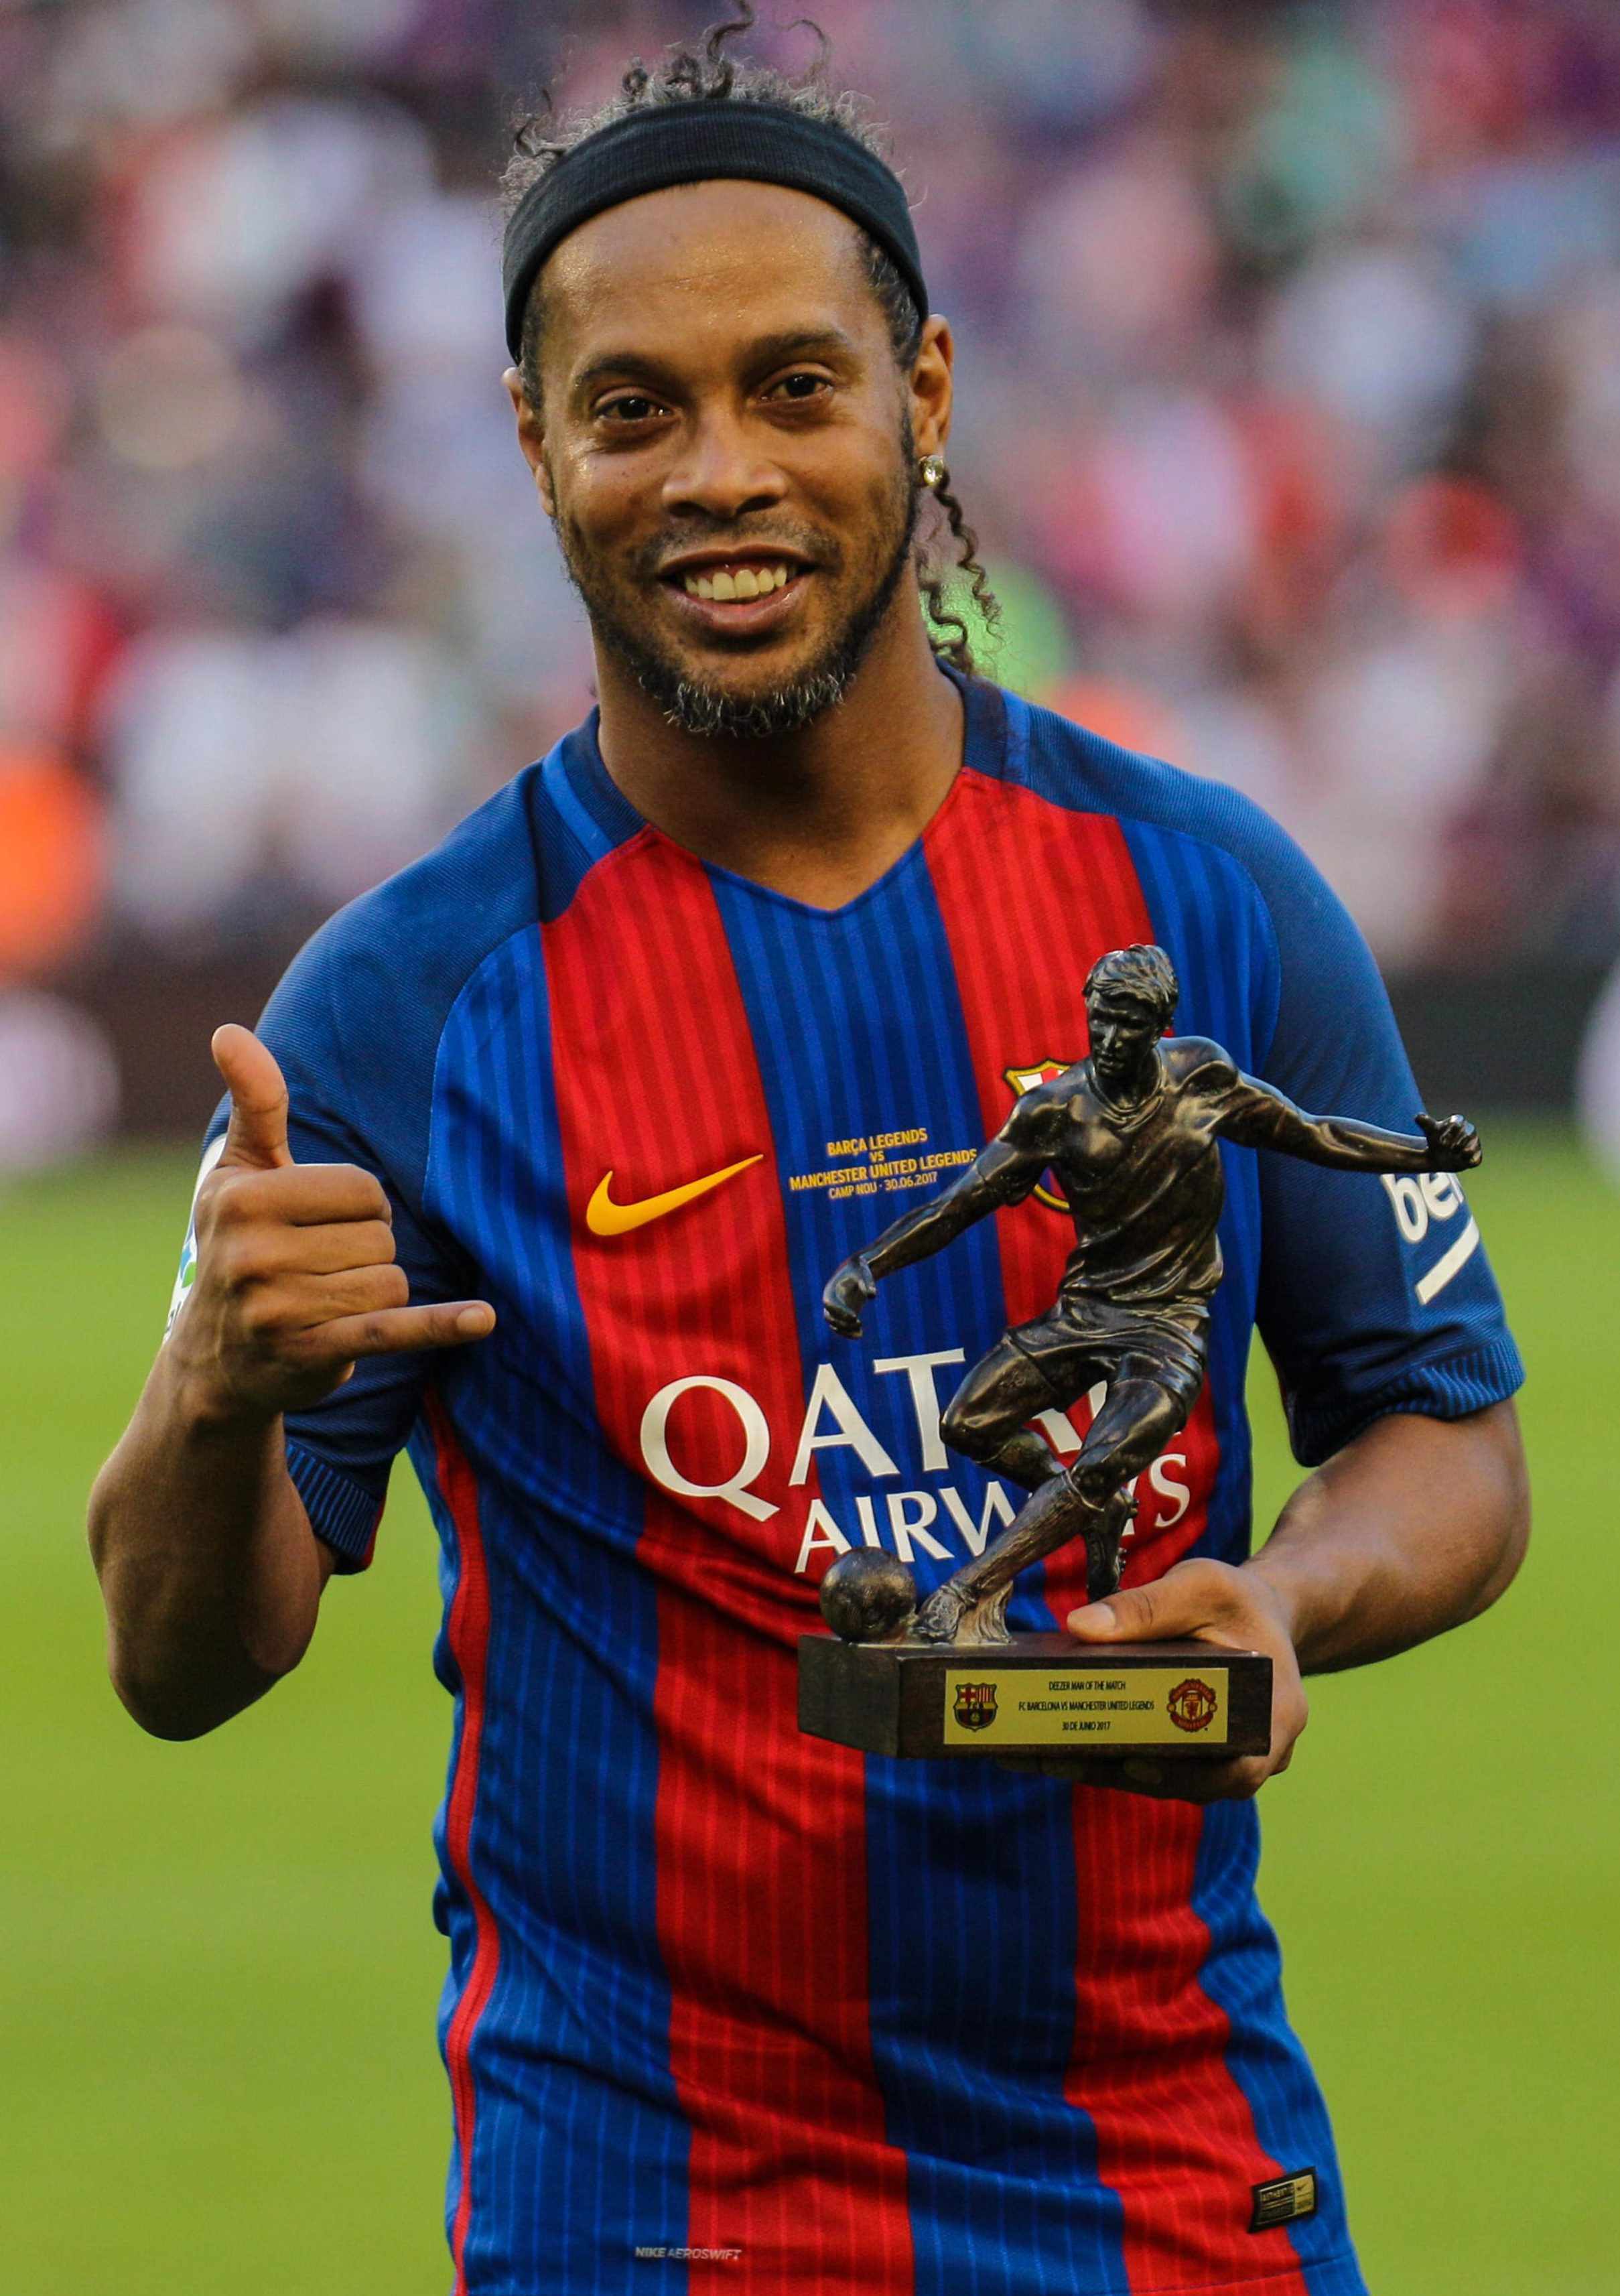 We have no doubt he placed this award alongside his Ballon d'Or